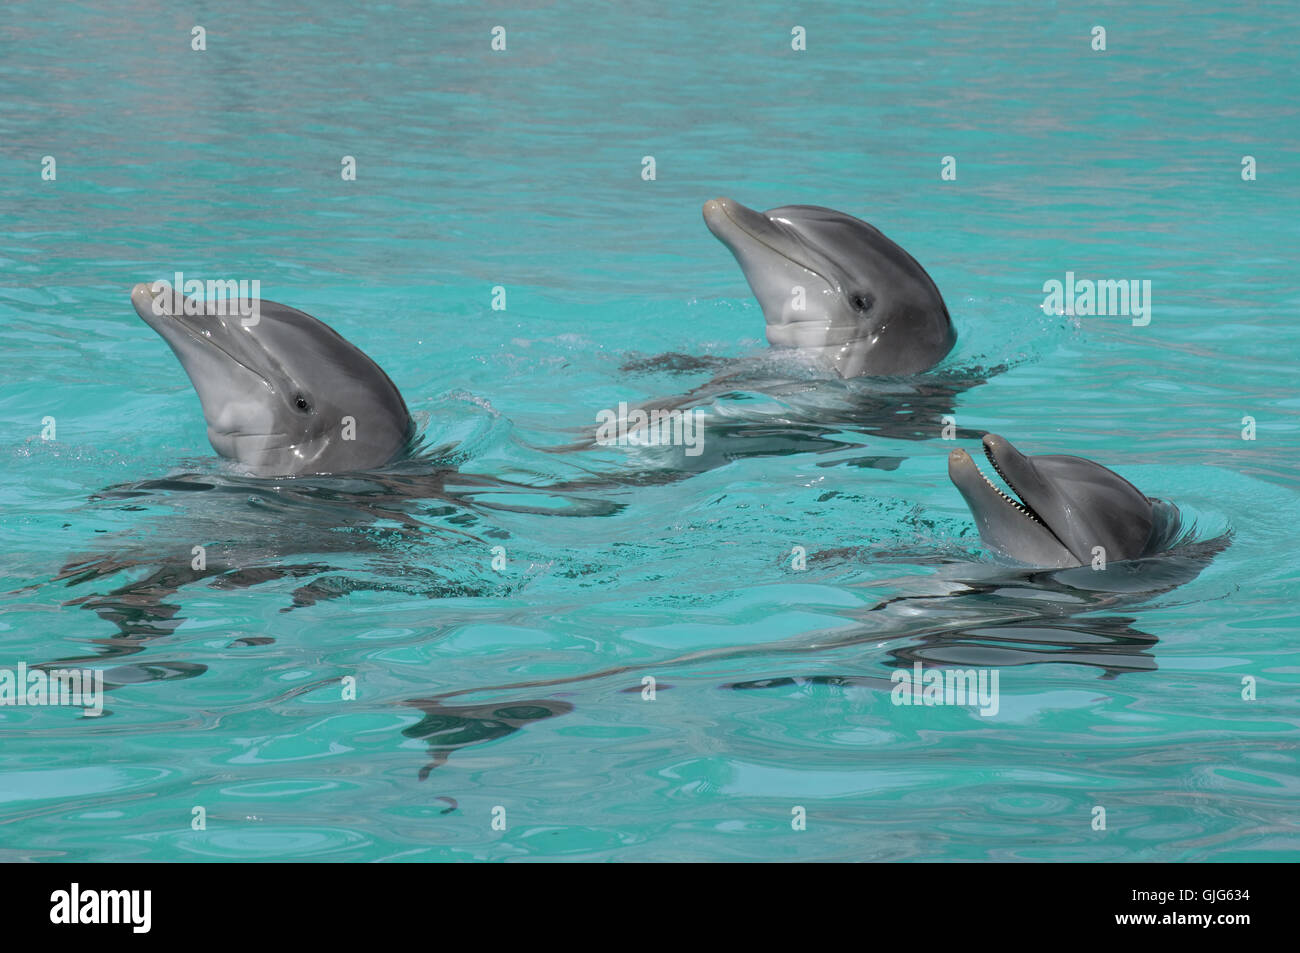 three synchronized swimming dolphins - Stock Image